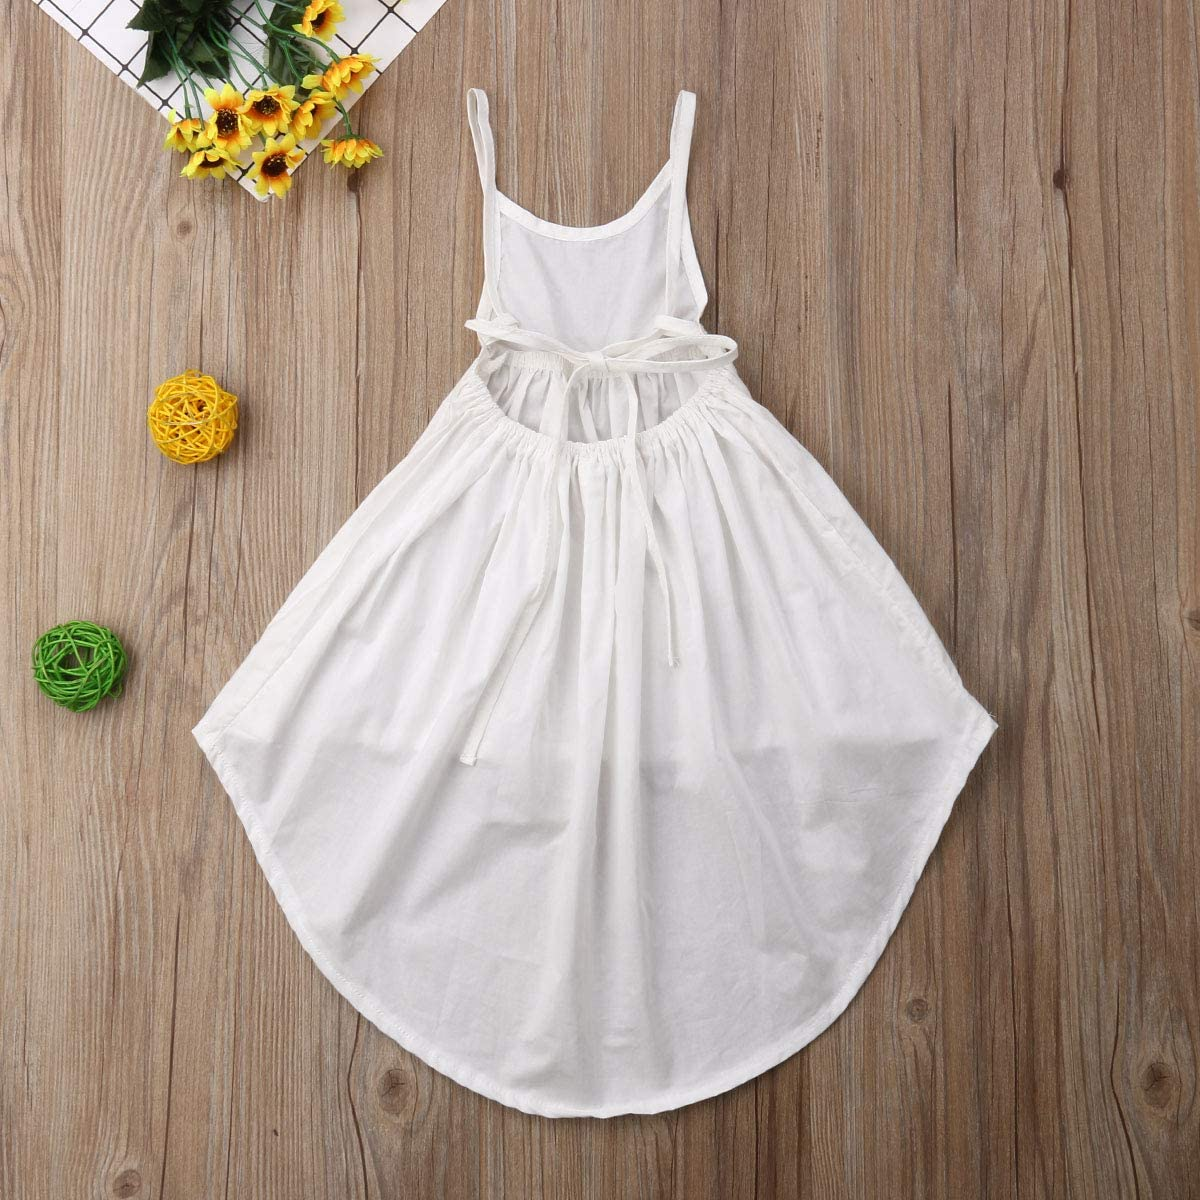 Hwaikun Baby Girl Midi Dress Toddler Sleeveless Long Skirt Kid Children Vest Dress for 1-6Years